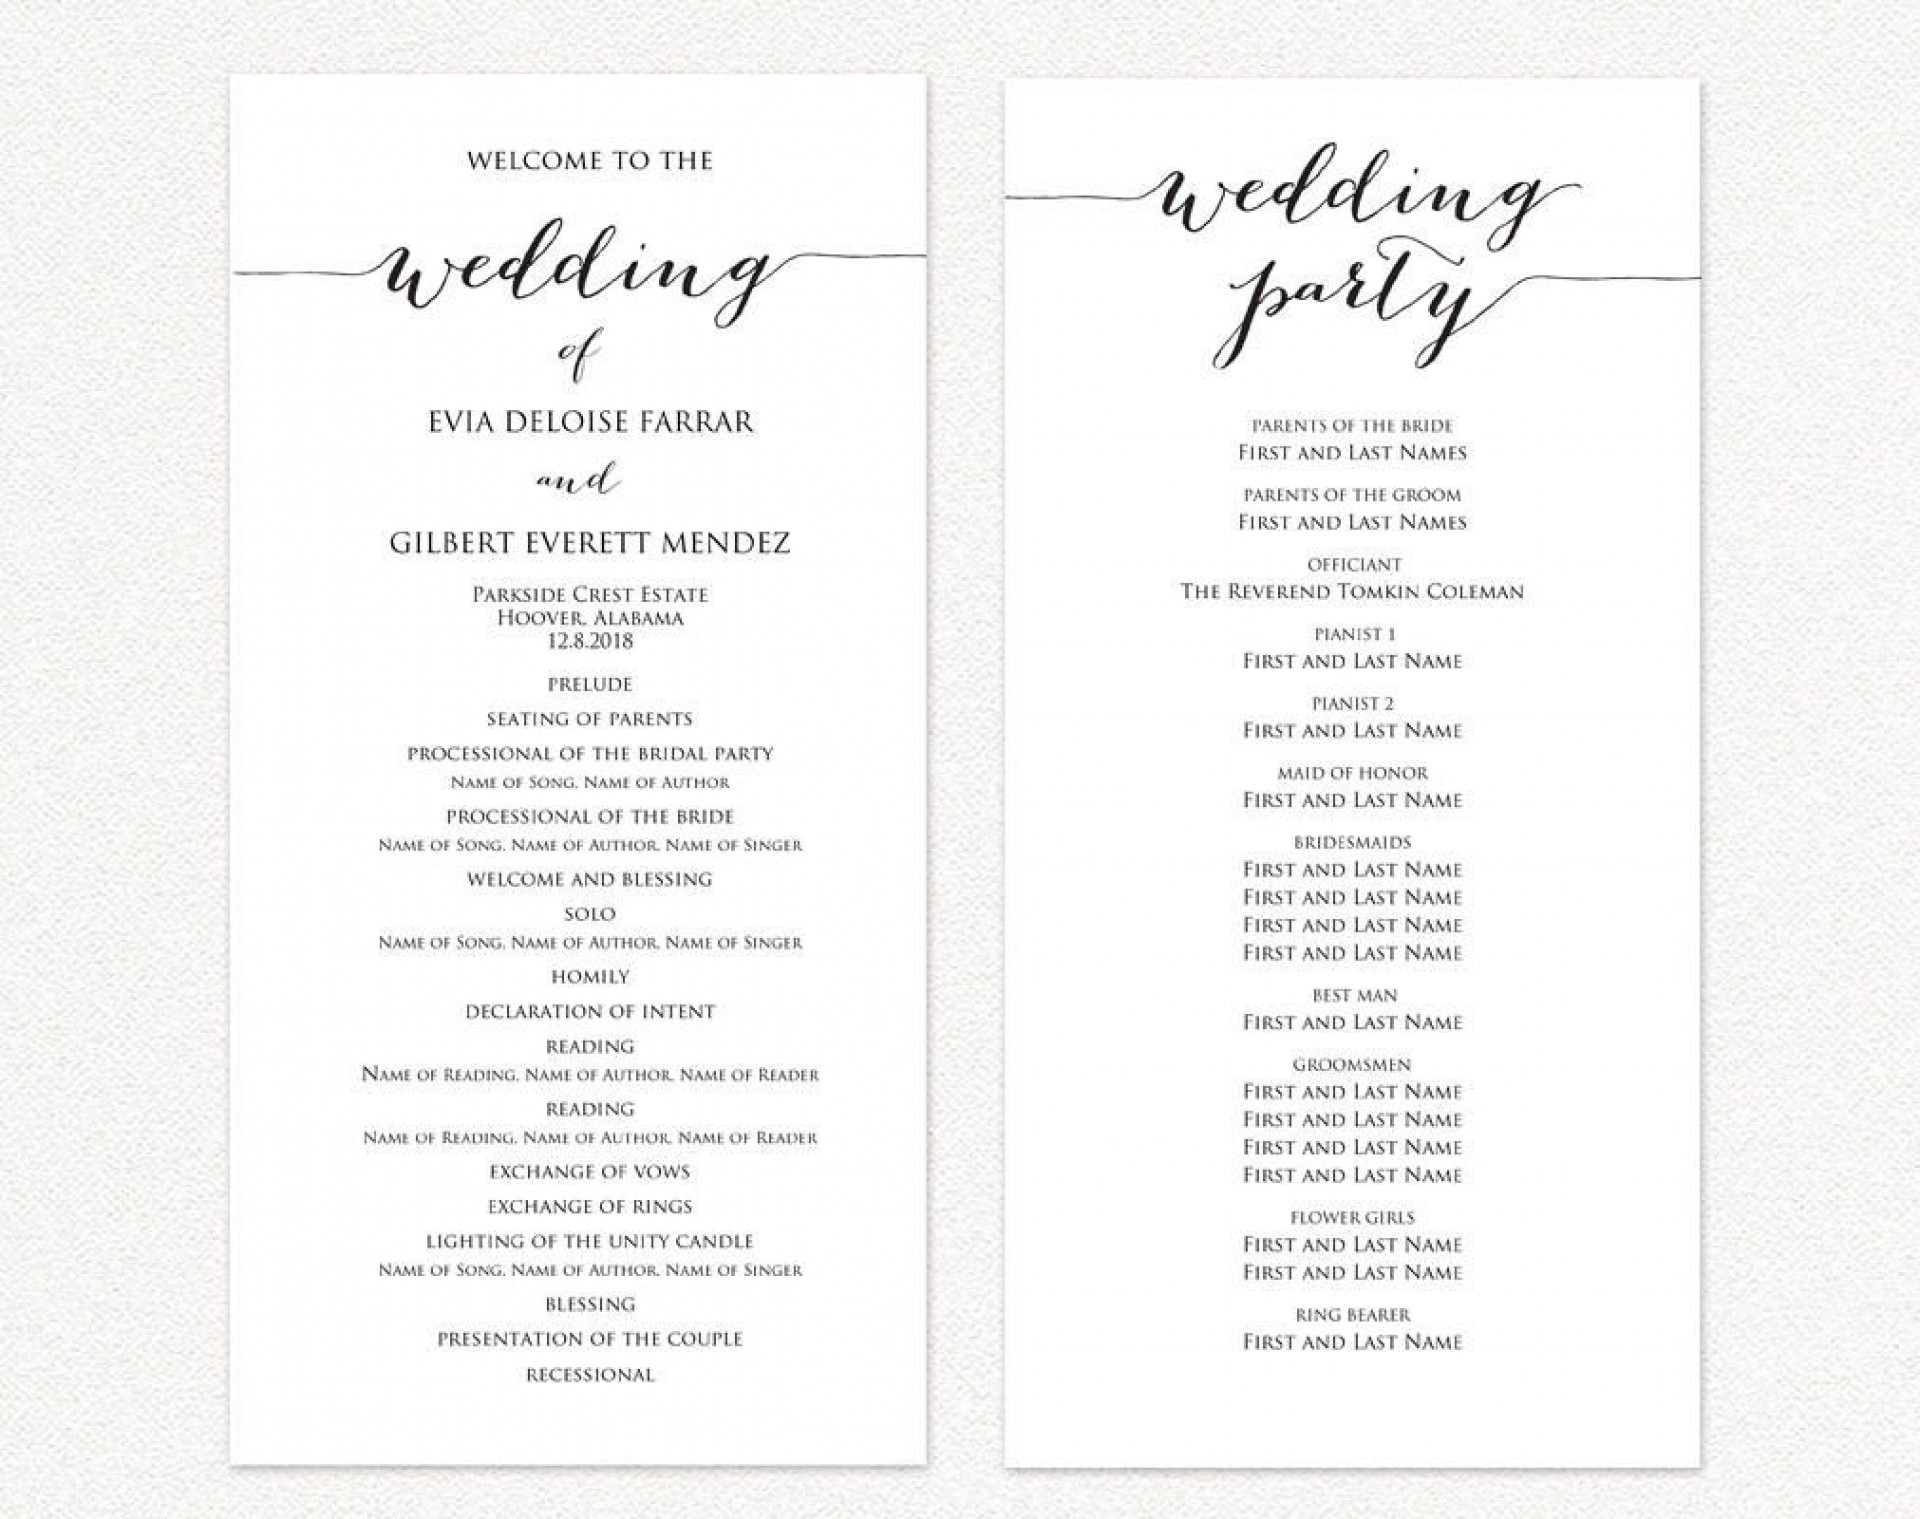 009 Exceptional Template For Wedding Program Inspiration  Word Free Catholic1920